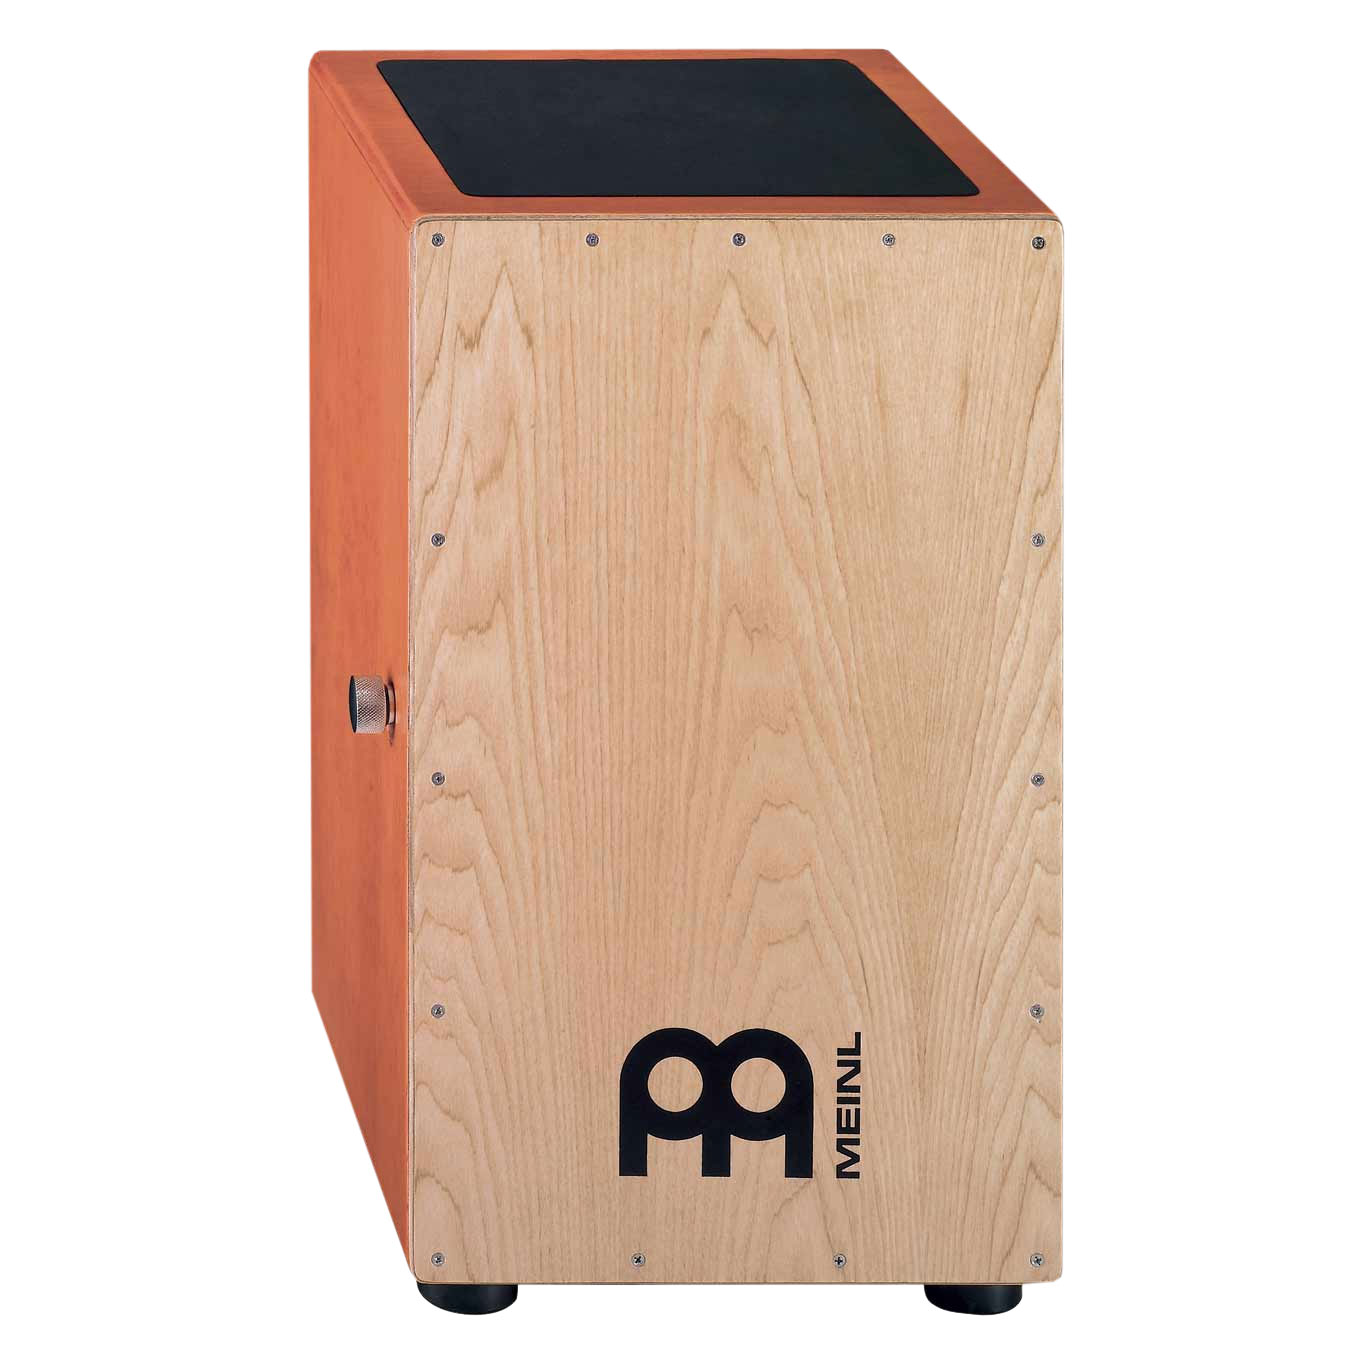 Meinl Snare Cajon with American White Ash Frontplate